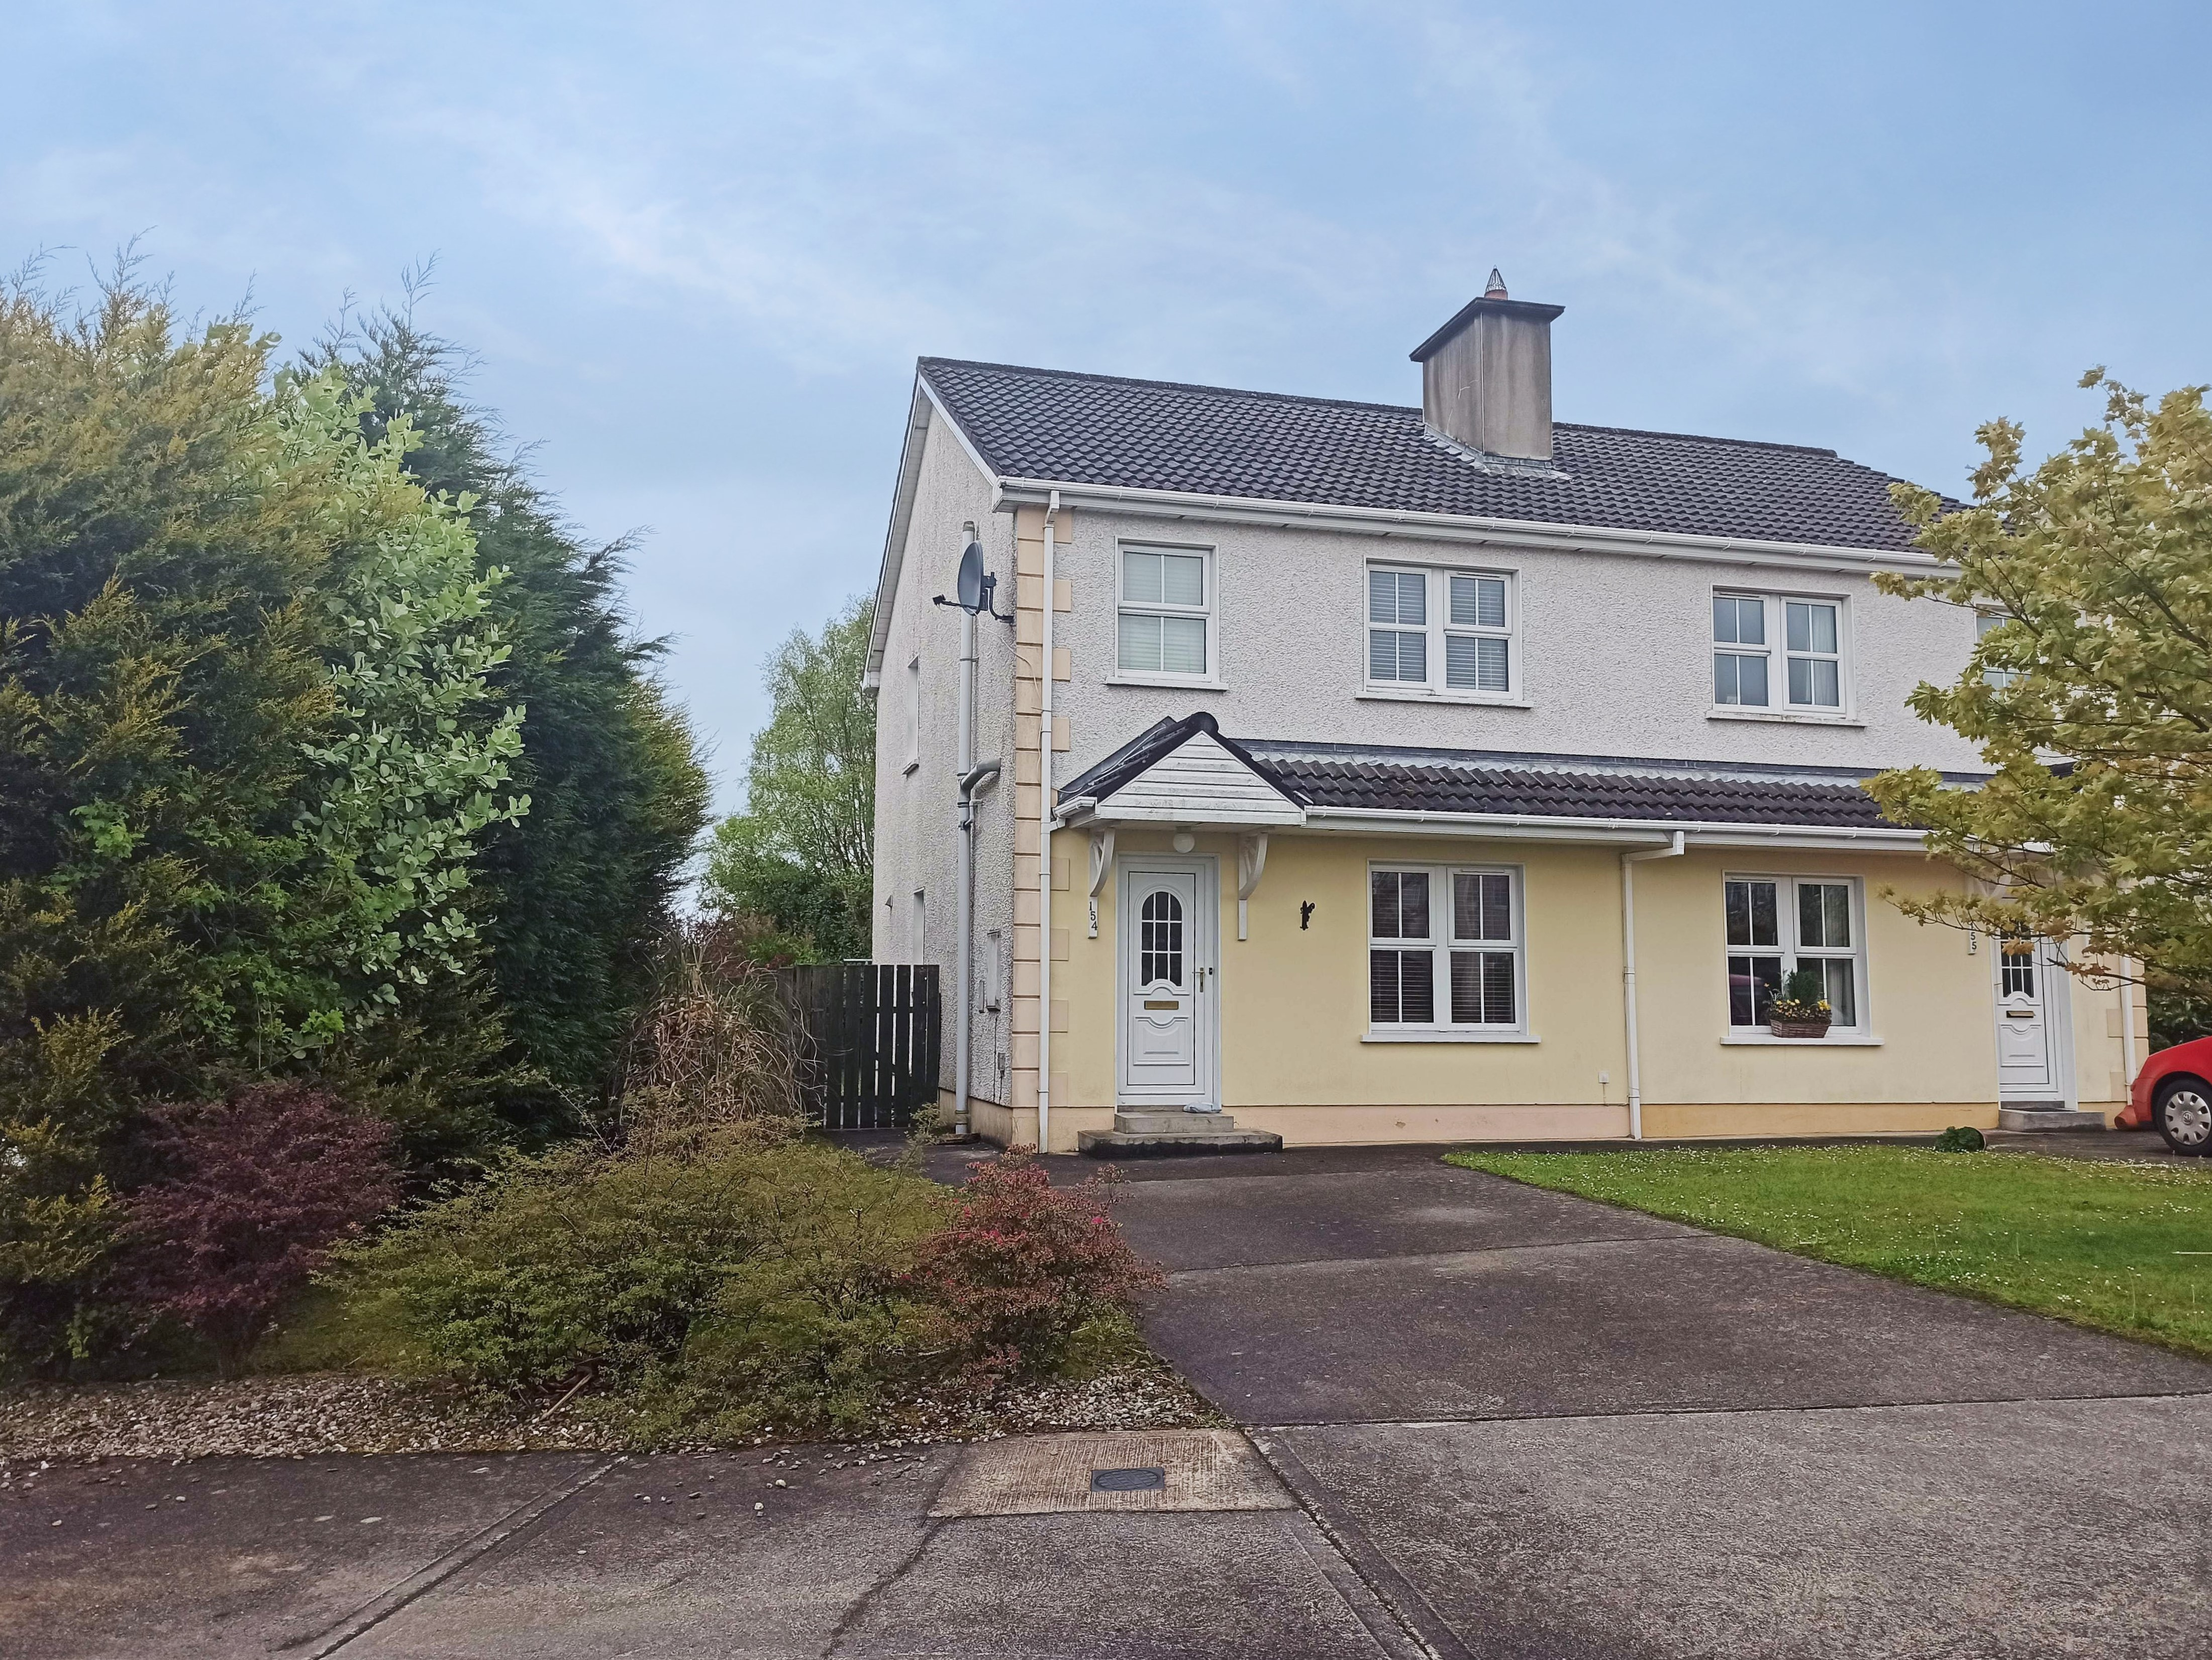 154 Meadowhill, Kiltoy, Letterkenny, Co. Donegal, F92 A59H